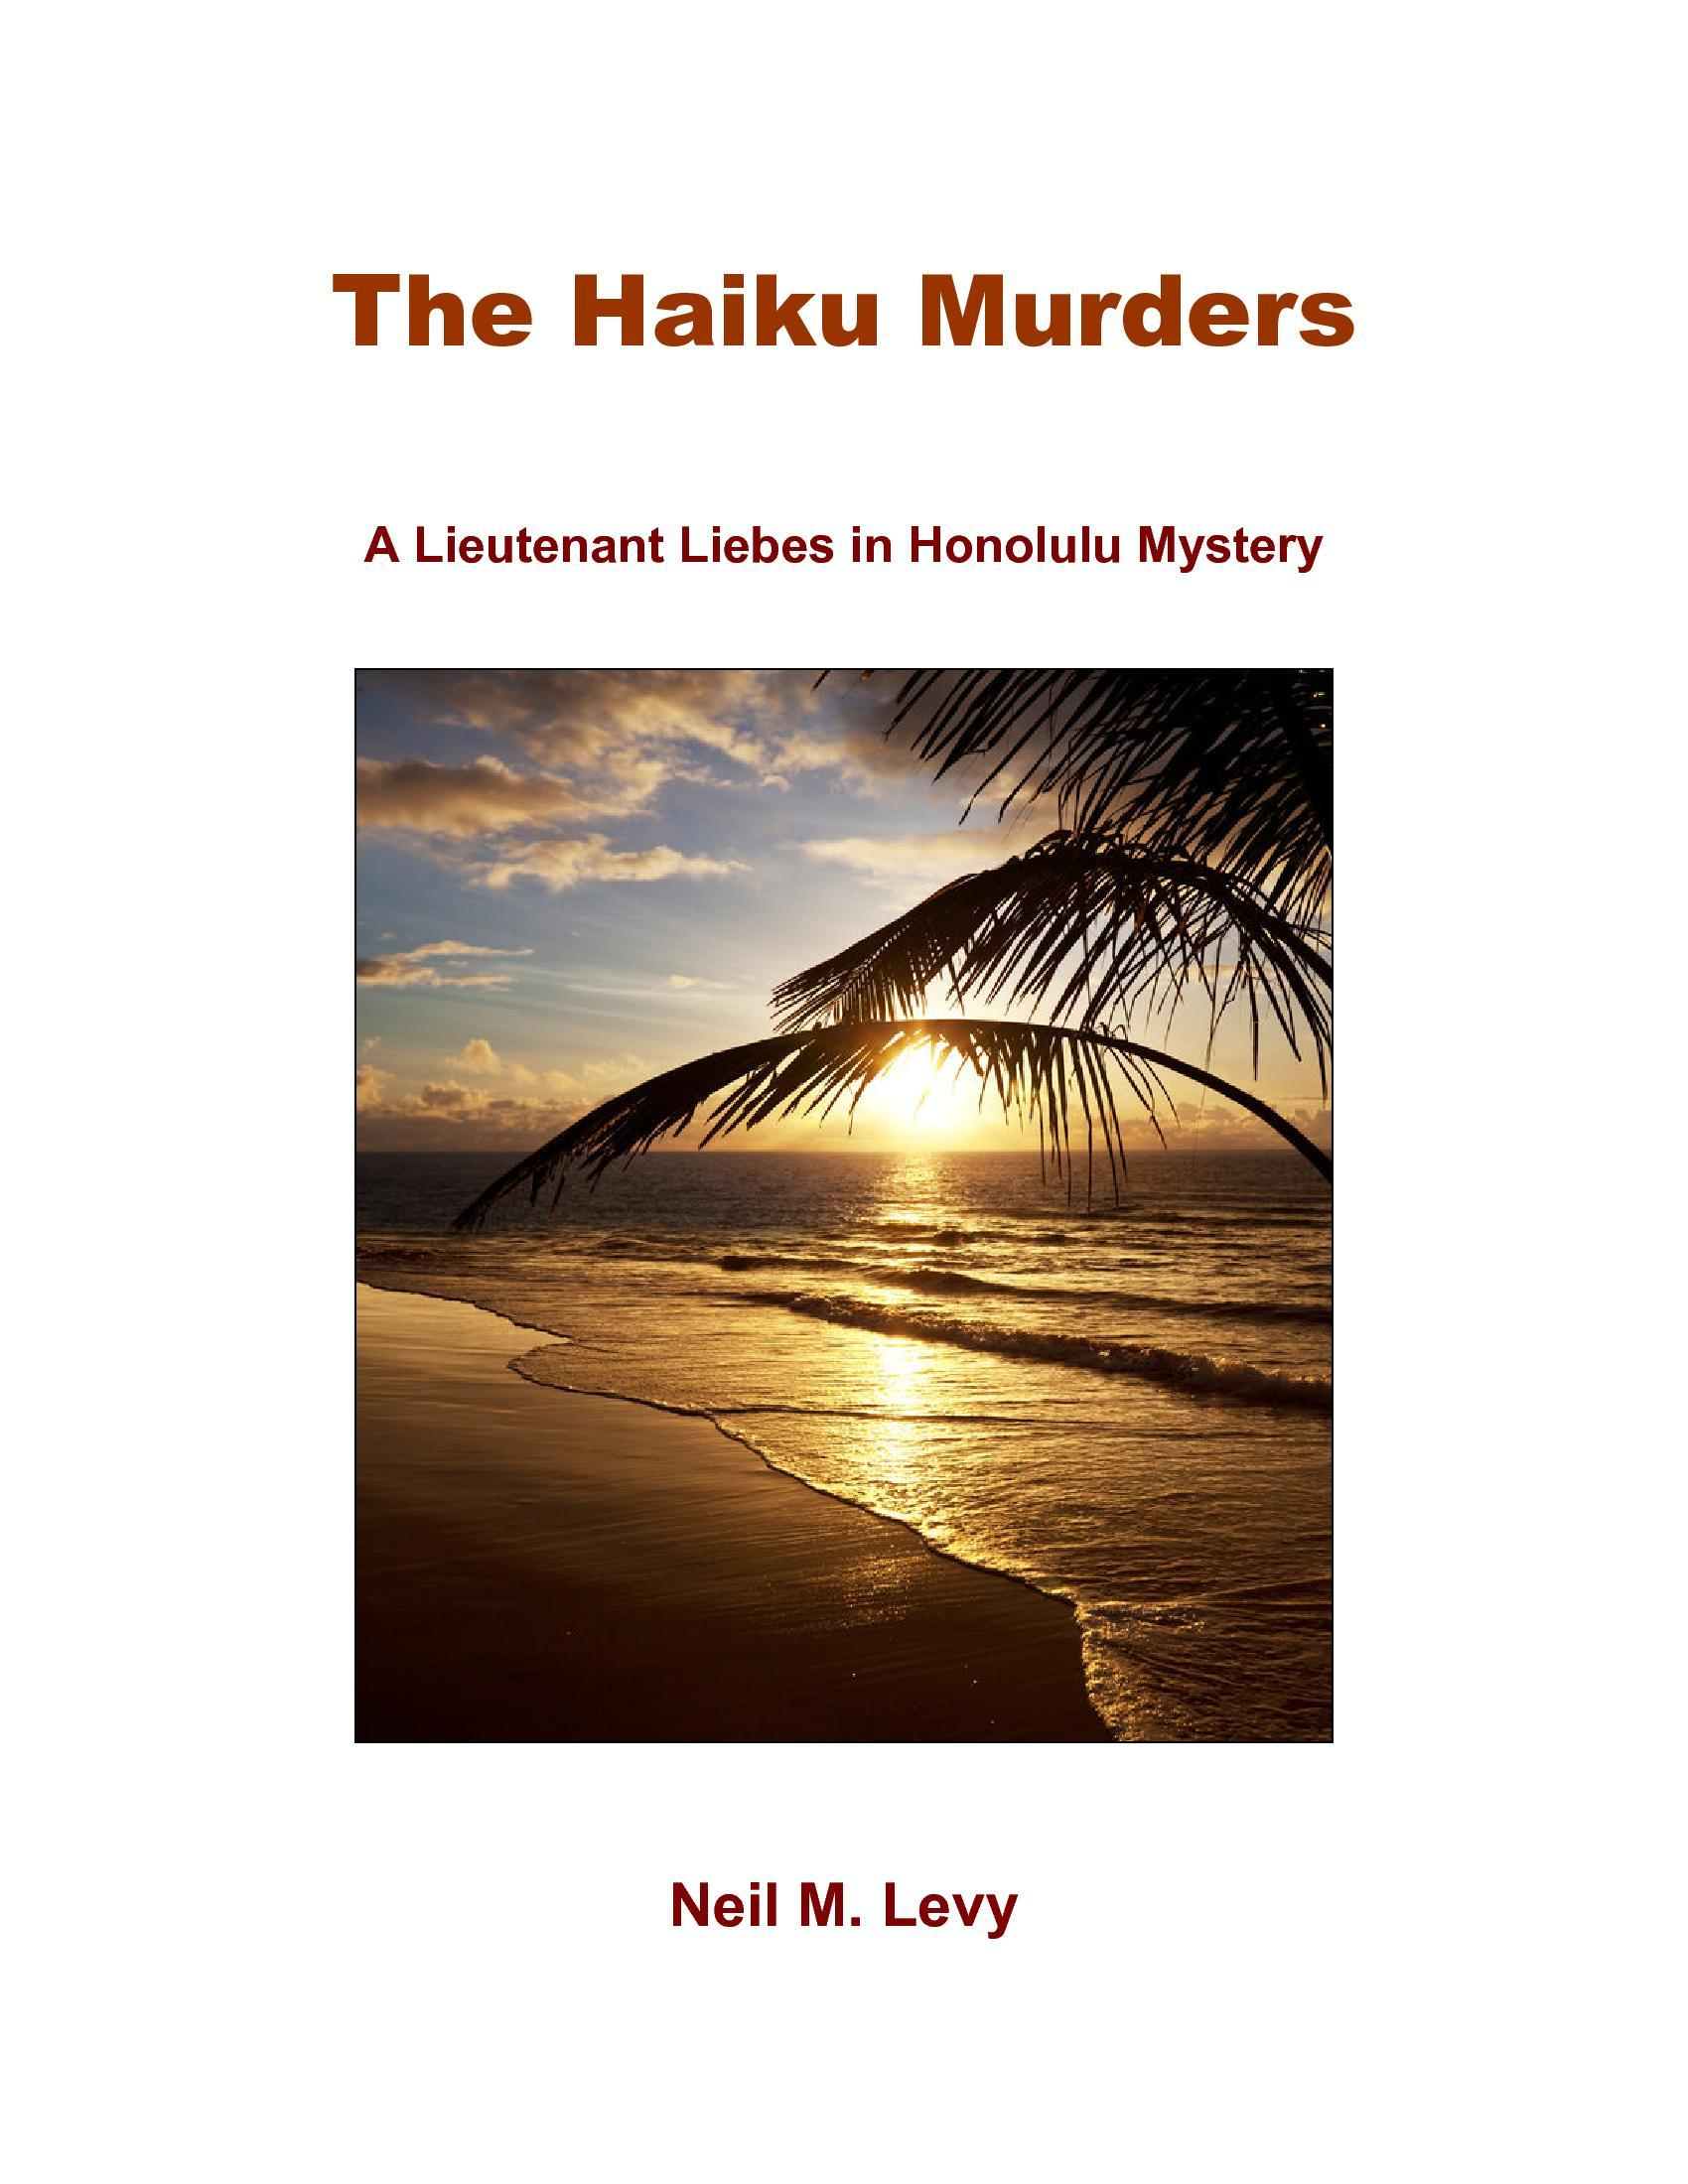 The Haiku Murders By: Neil Levy